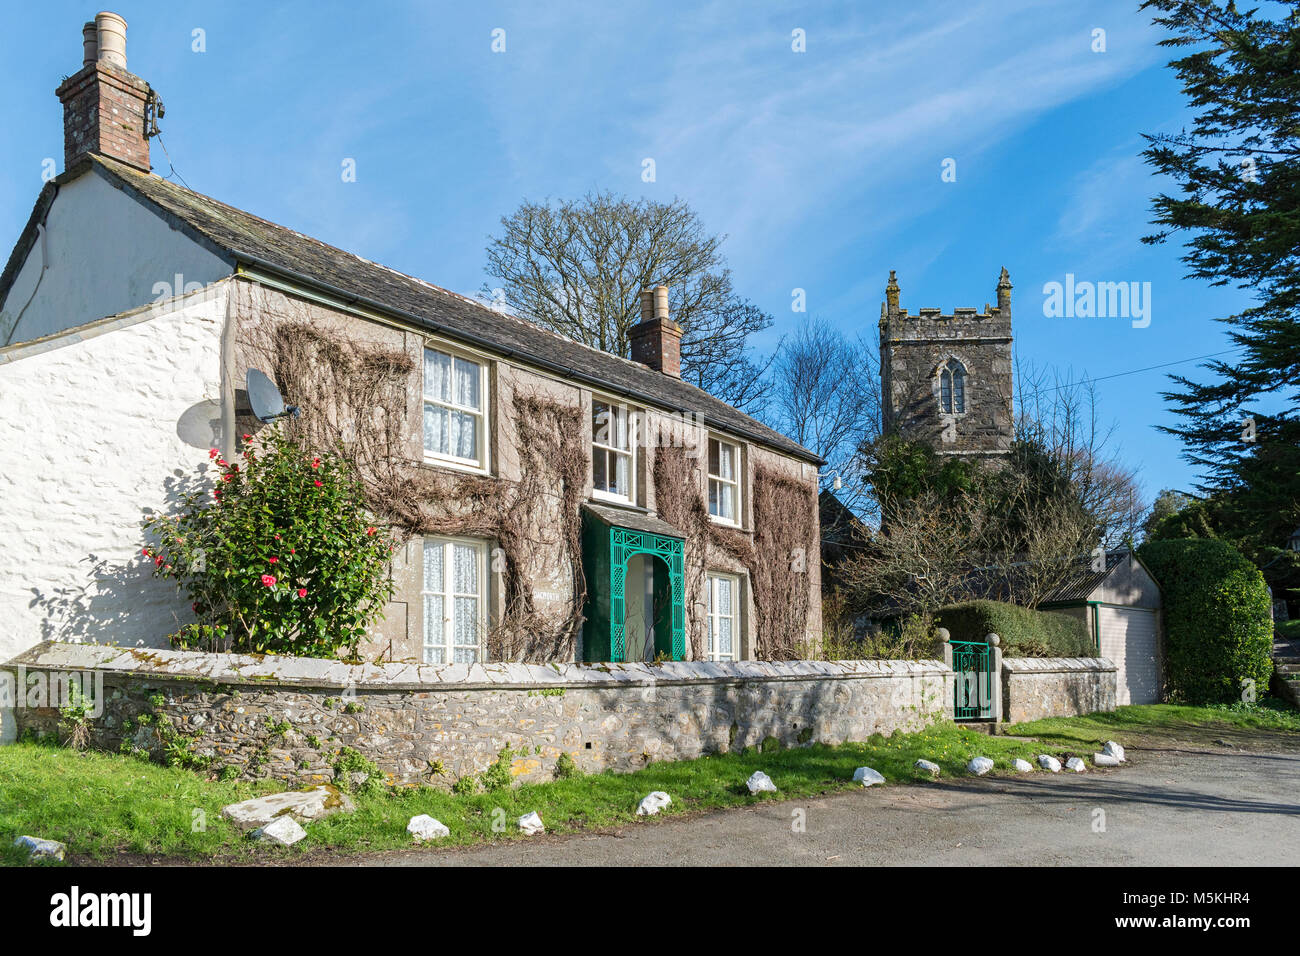 cottage and church in the cornish village of manaccan, cornwall, wngland, britain, uk. - Stock Image